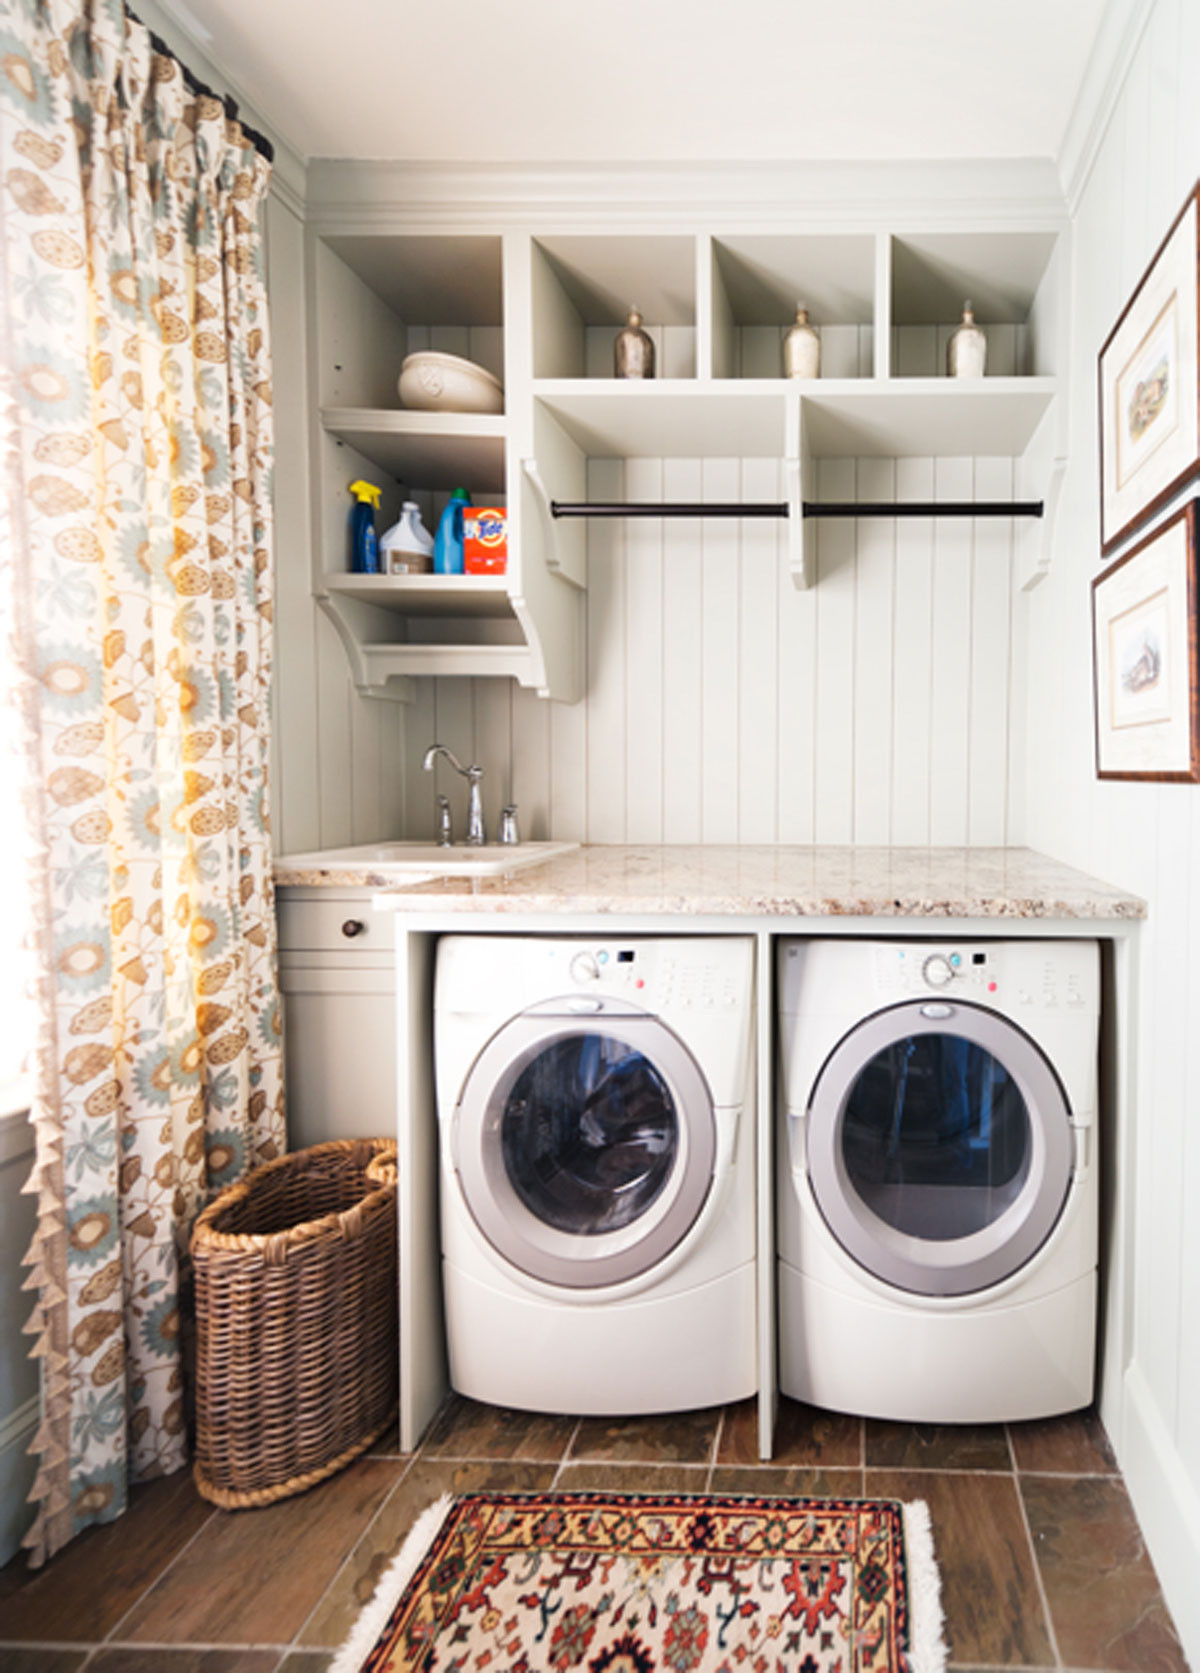 Best ideas about The Laundry Room . Save or Pin Small Laundry Room Ideas to Try Now.